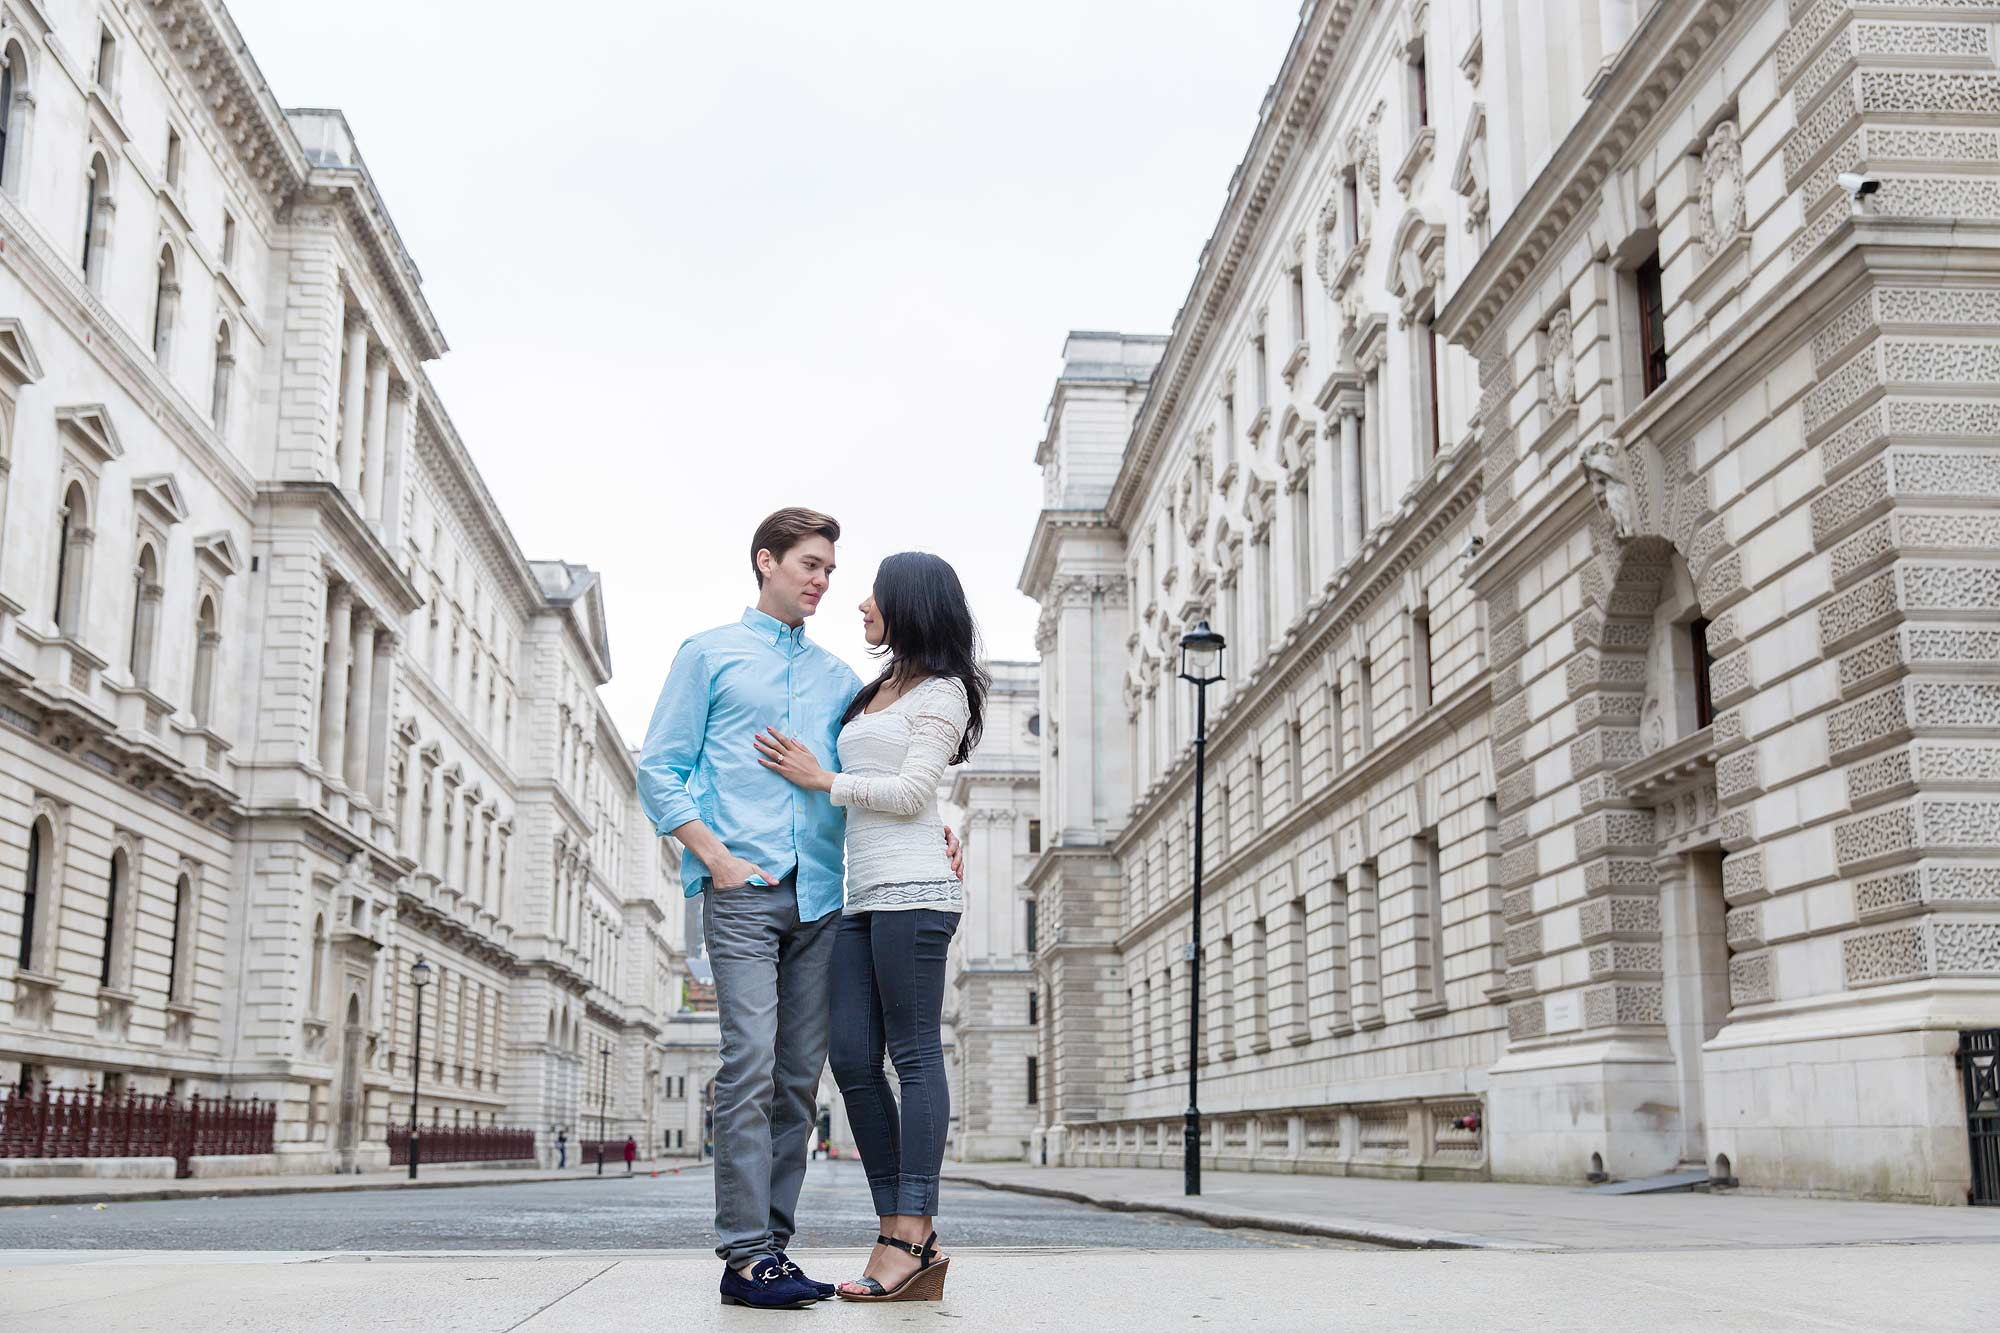 A quiet London street for an engagement shoot